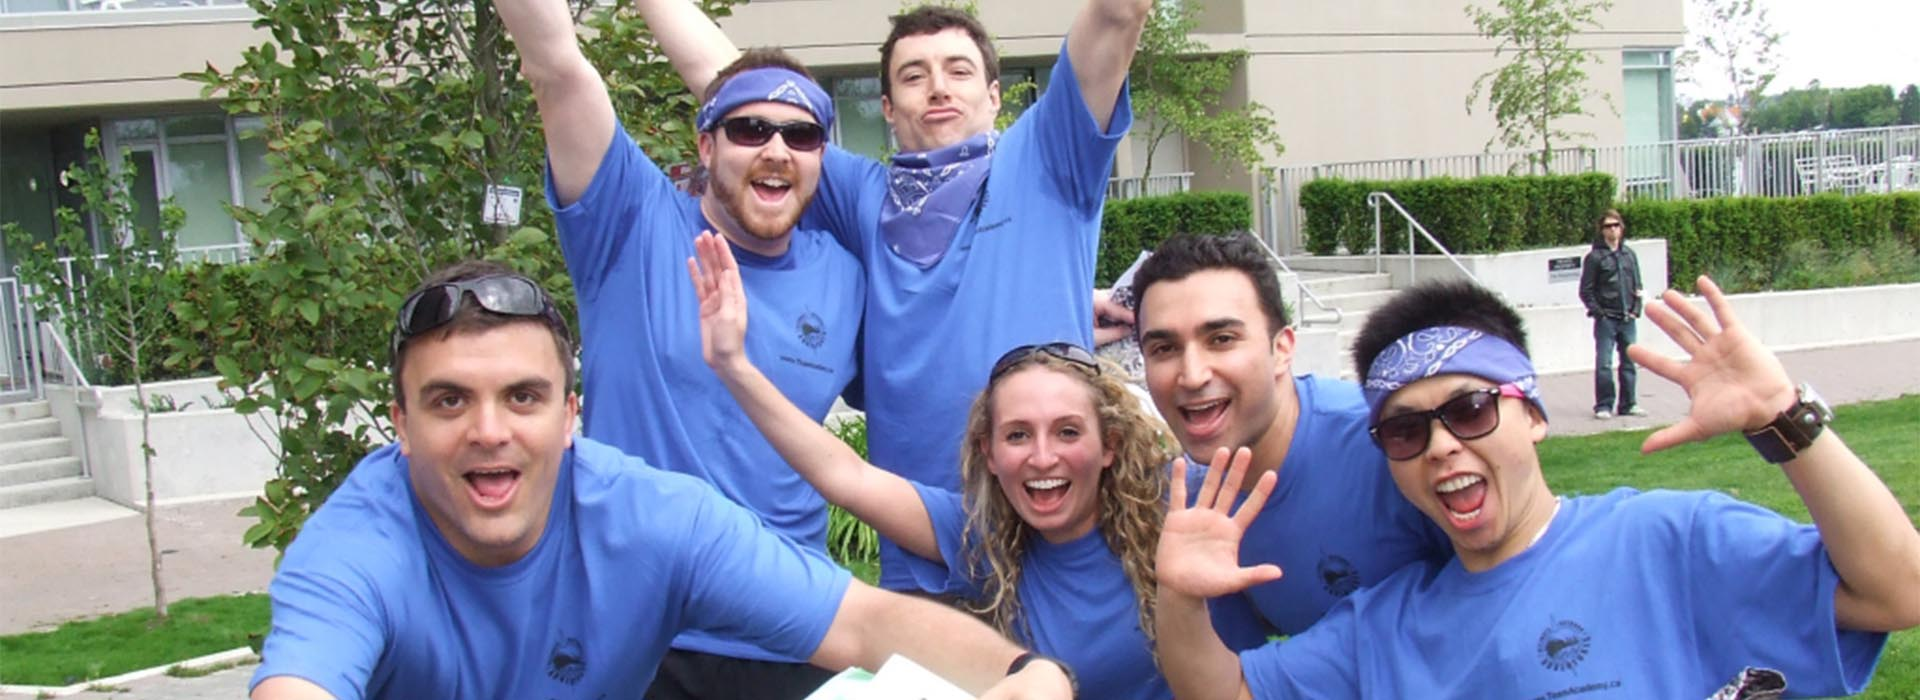 Team building Events that Inspire for success.